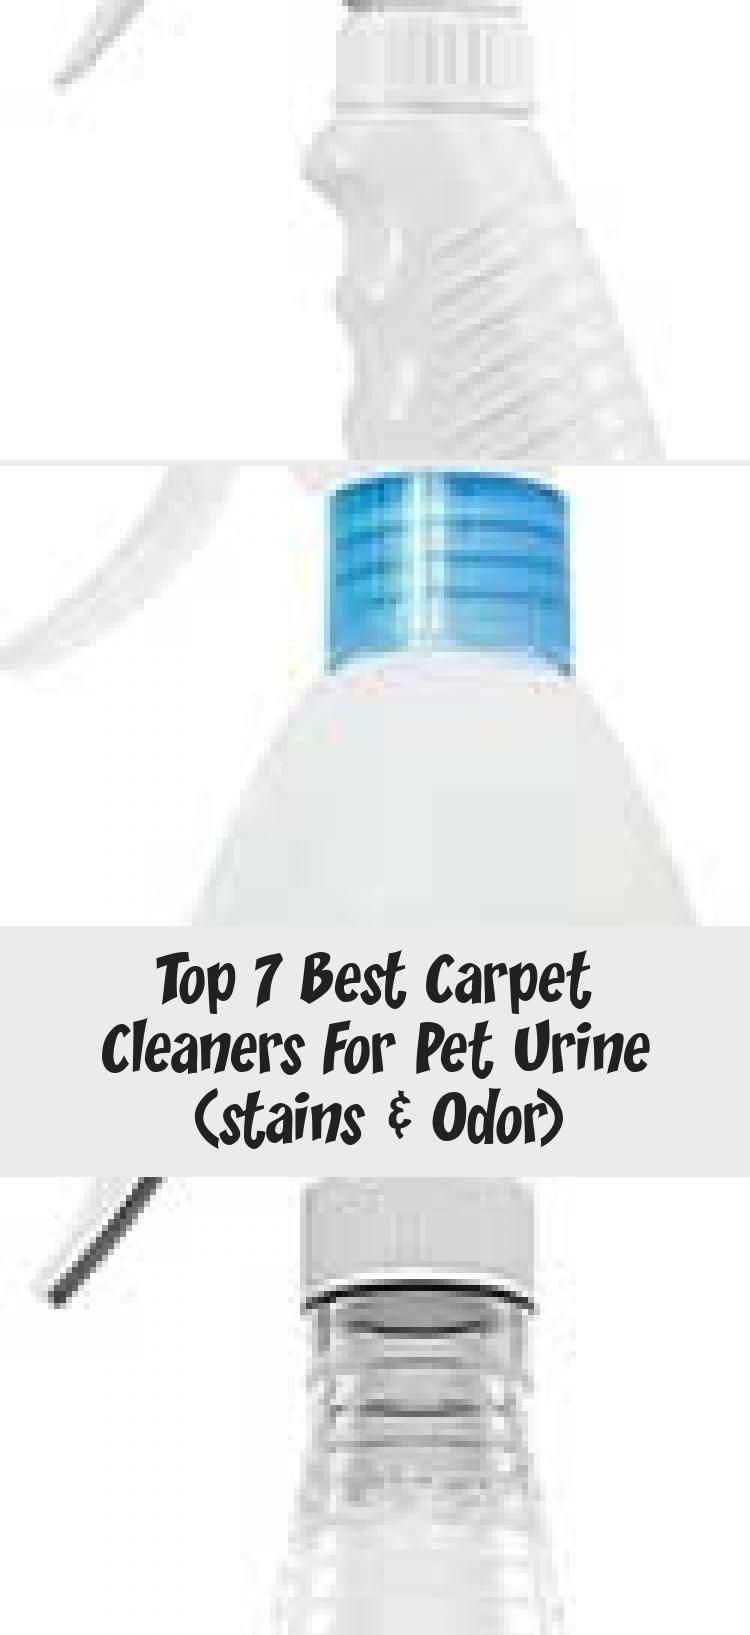 Top 7 Best Carpet Cleaners For Pet Urine Stains Odor In 2020 Carpet Cleaners Urine Stains Best Carpet